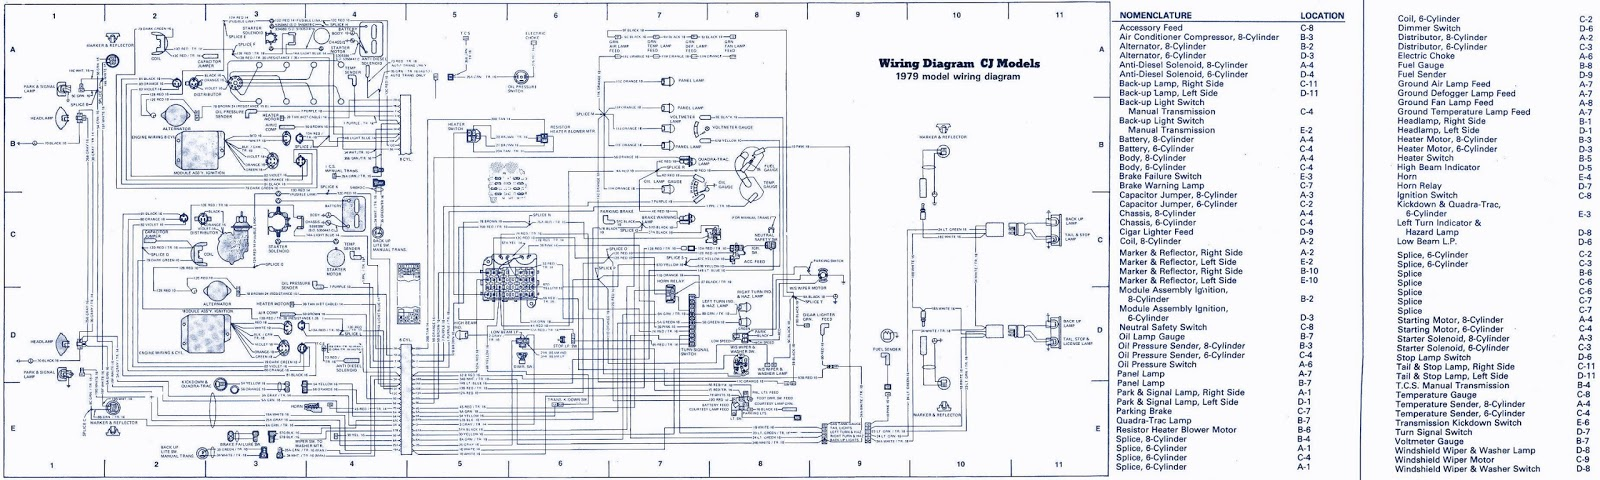 Cj7 Wiring Diagram Jeep Wiring Diagram And Schematics – Jeep Cj7 Wiper Motor Wiring Diagram